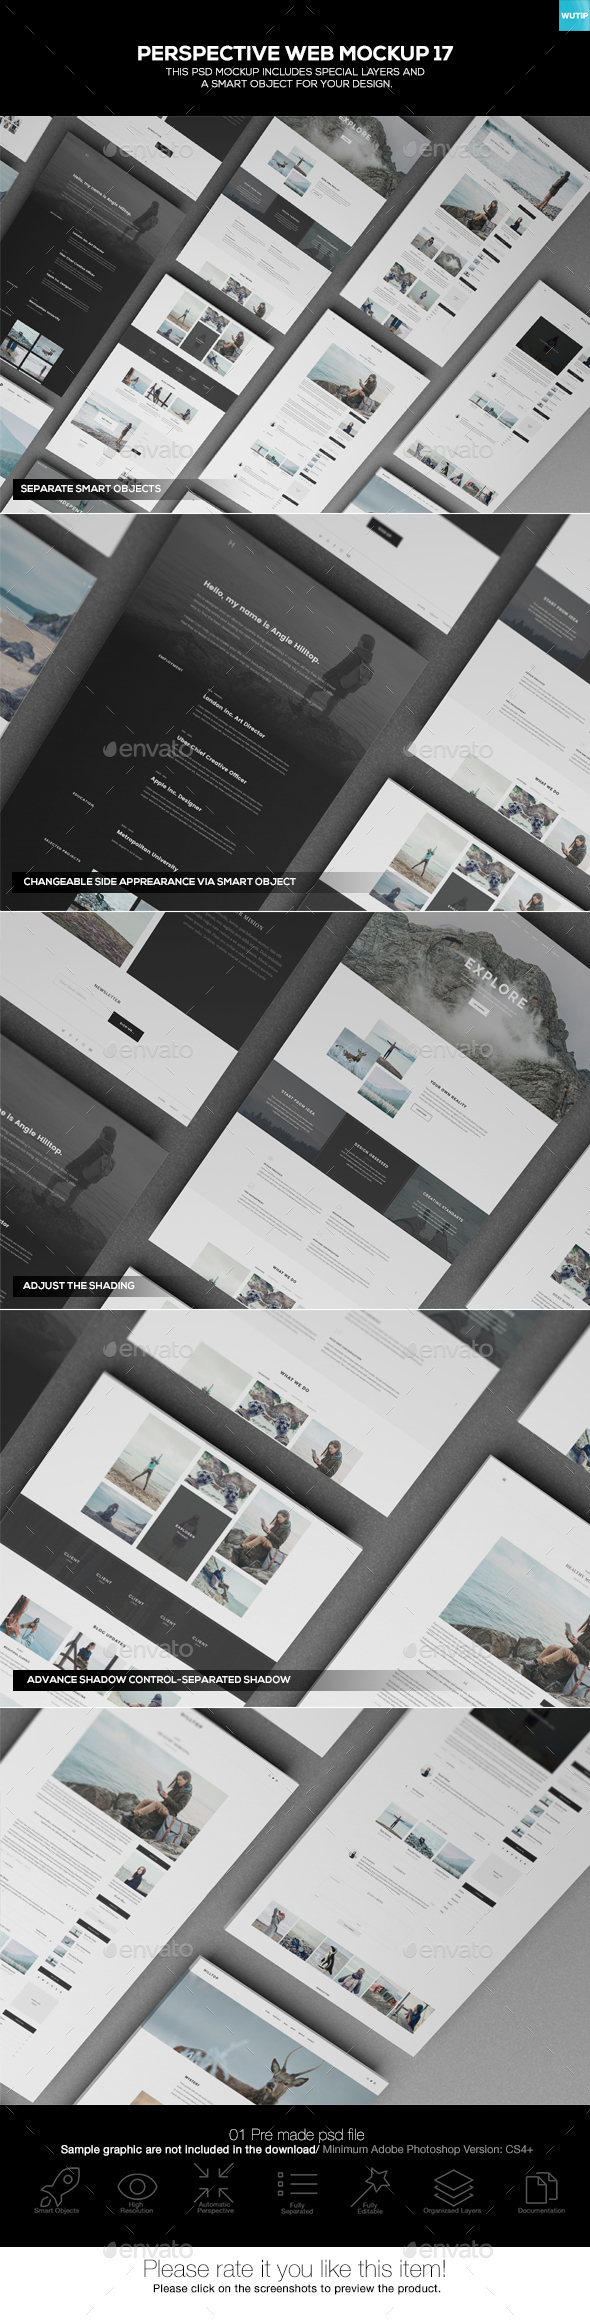 Perspective Web Mockup 17 - Website Displays